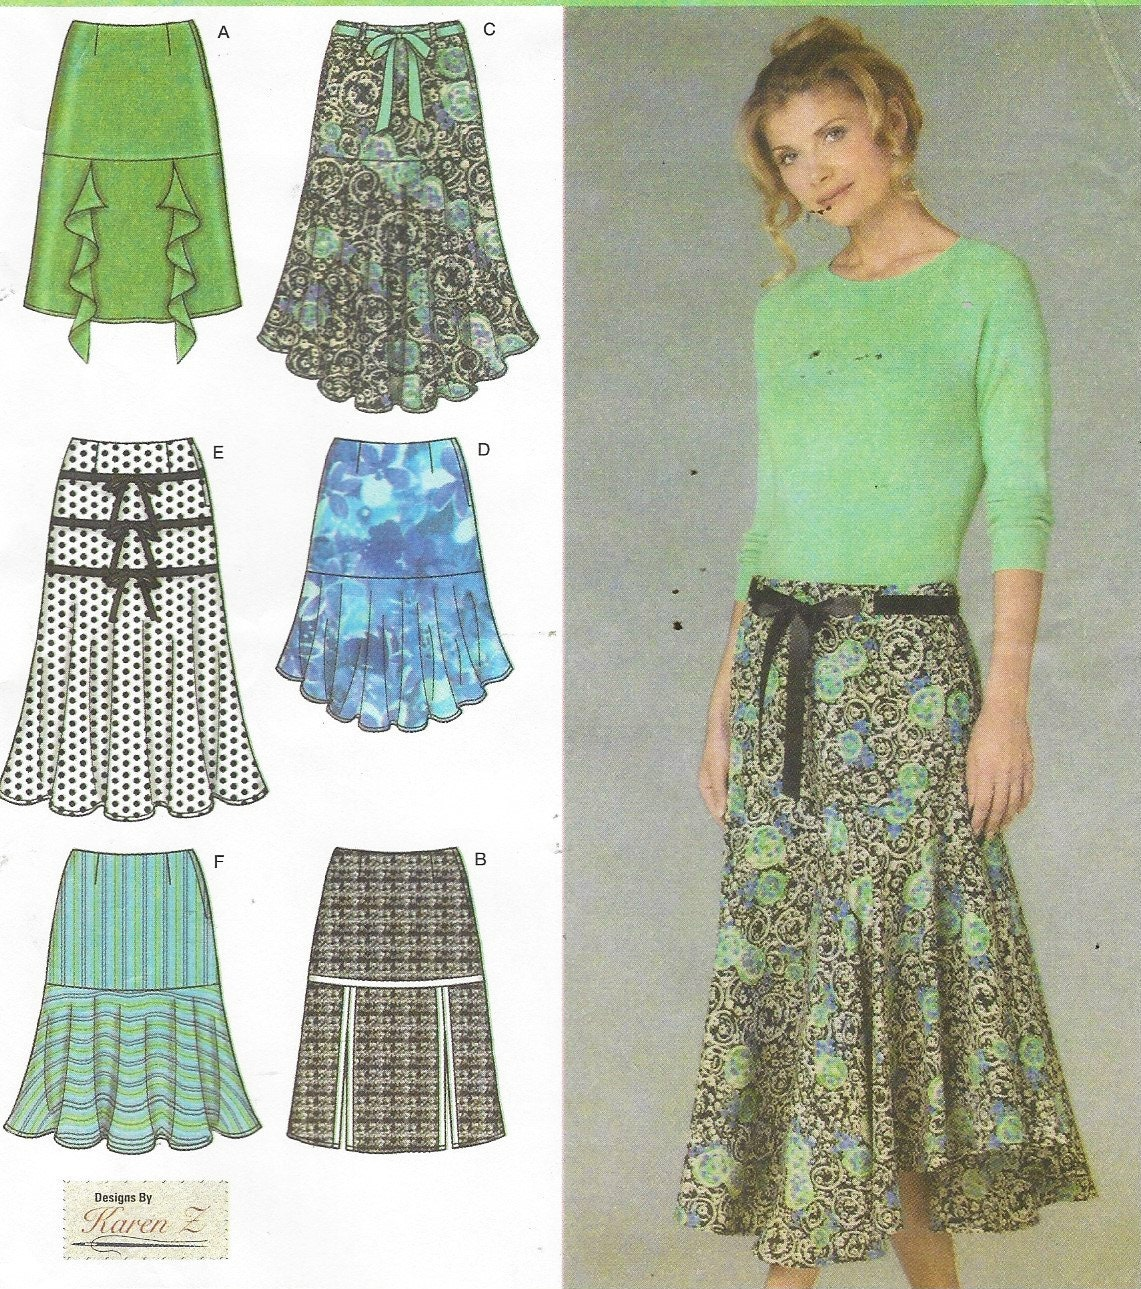 z simplicity sewing pattern 4753 womens skirt with